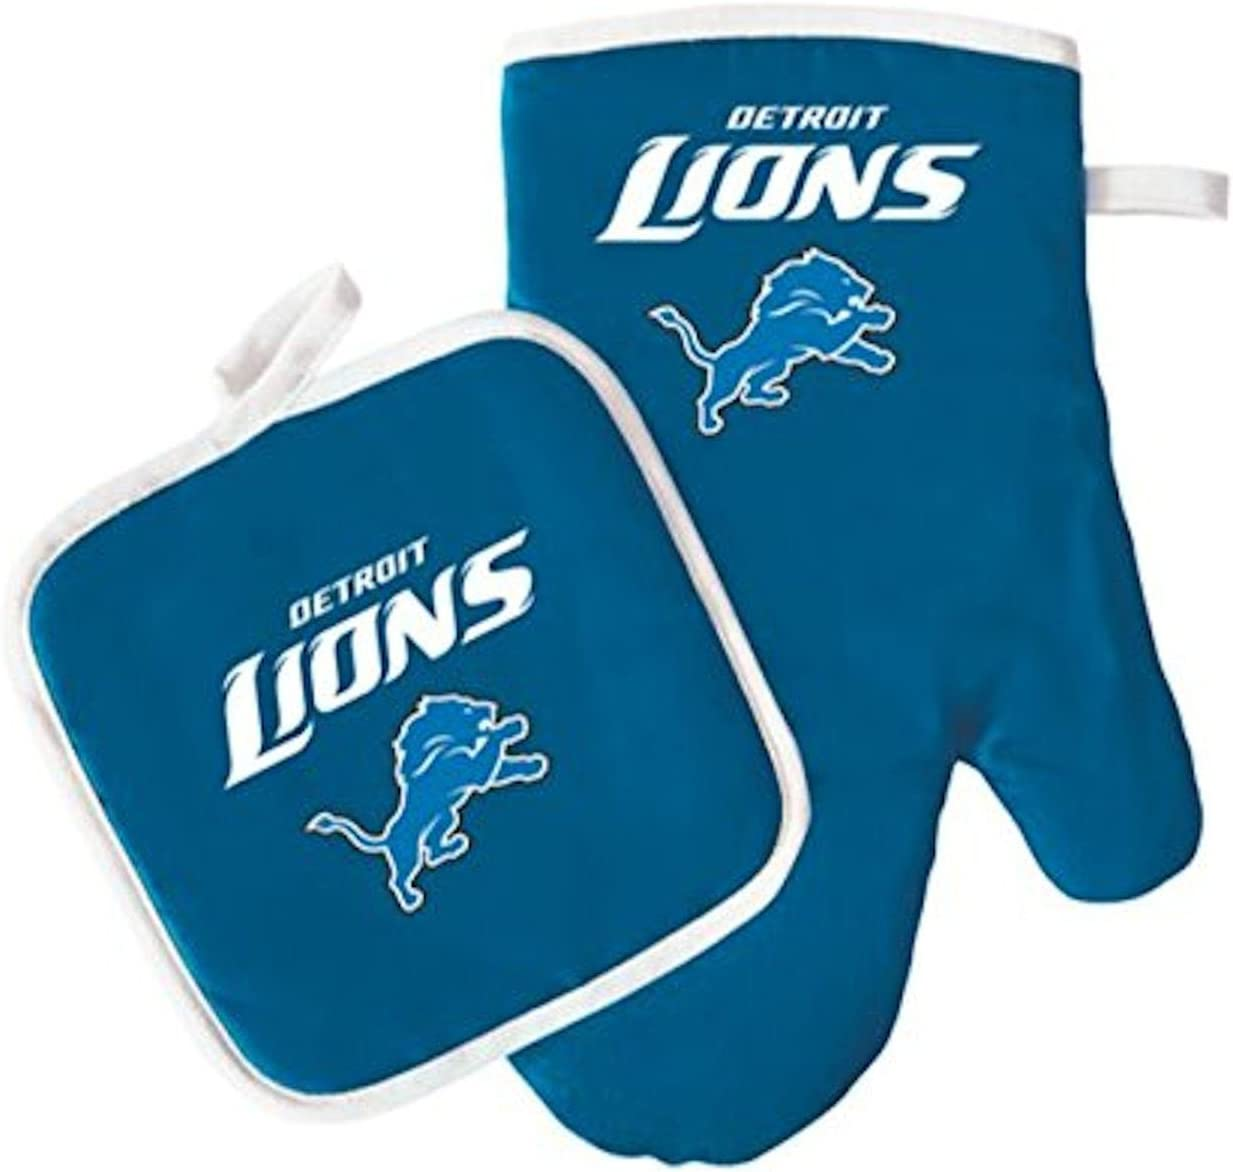 NFL Detroit Lions Logo Oven Mitt & Pot Holder, One Size, Blue